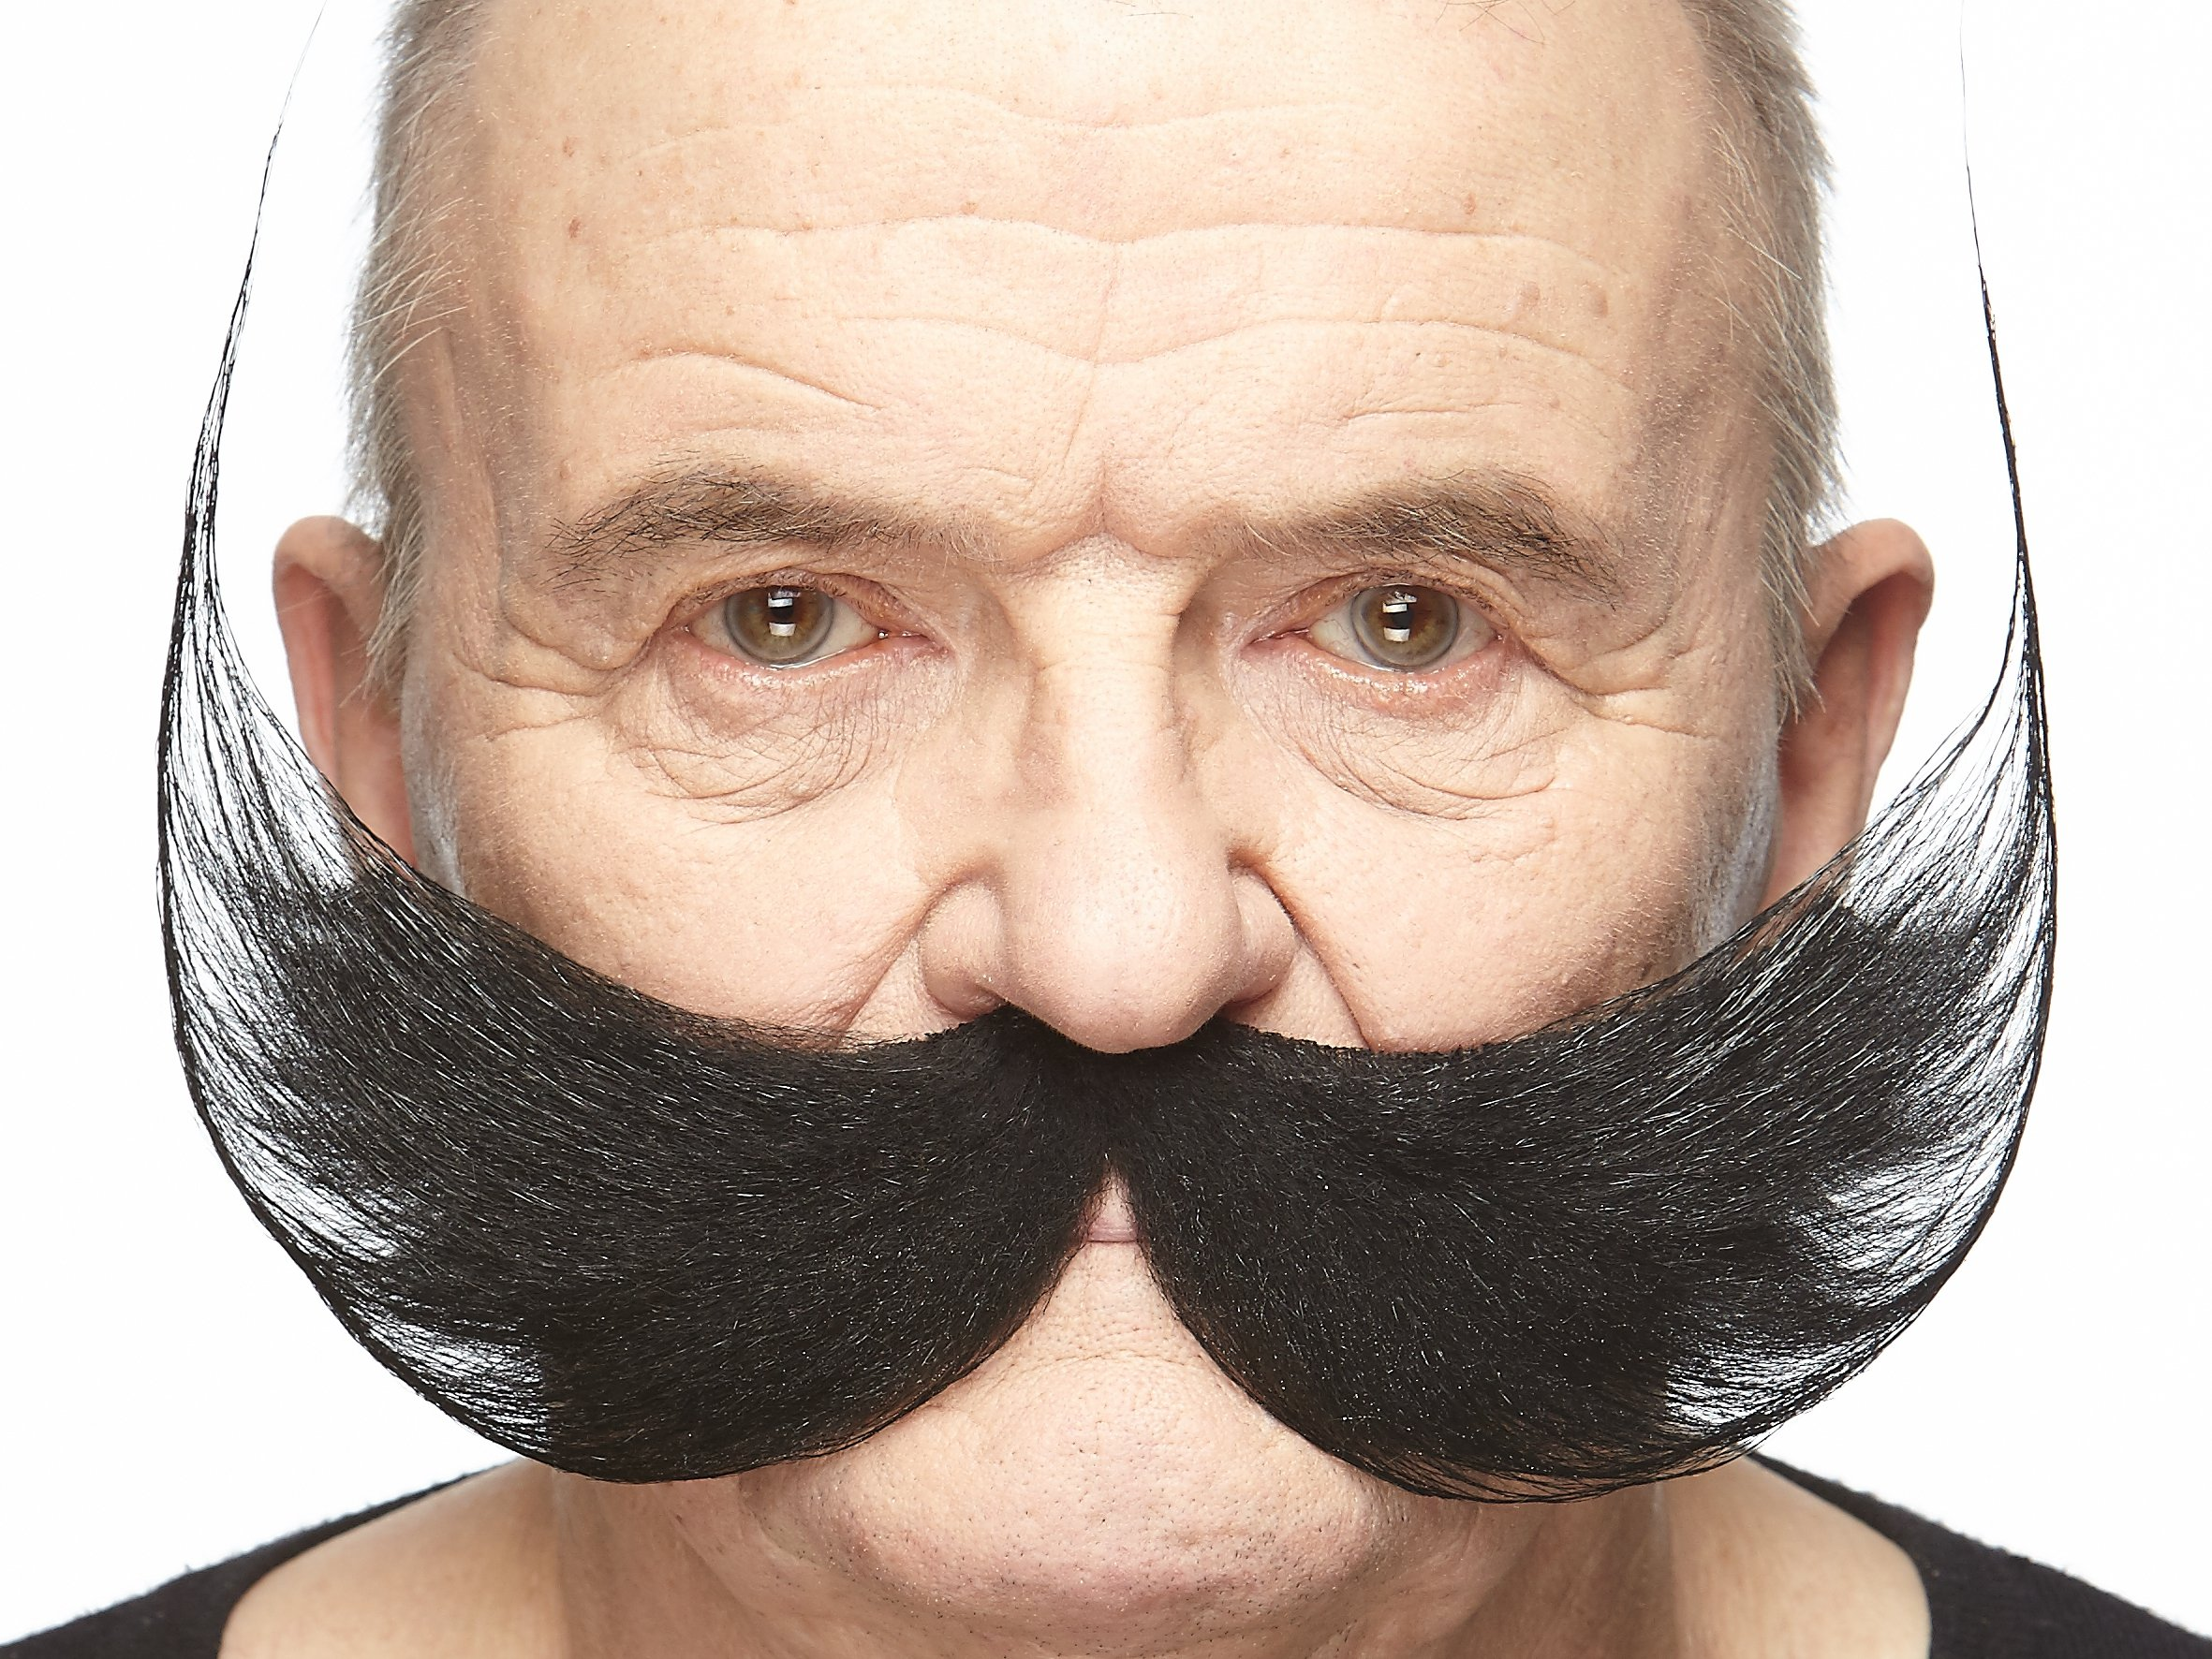 Mustaches Self Adhesive, Novelty, Fake Fisherman's, Black Color by Mustaches